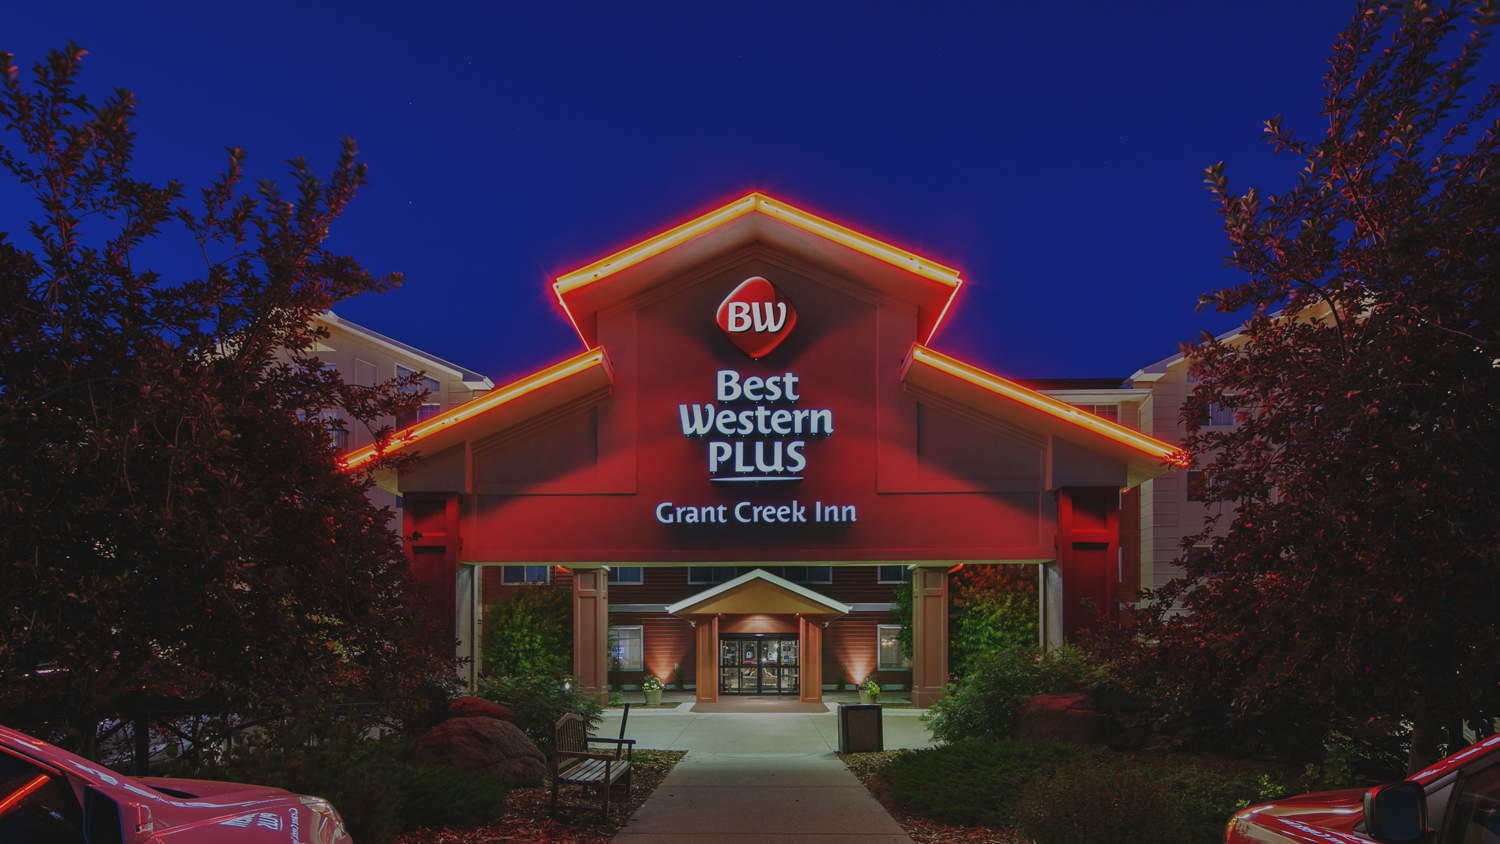 The Grant Creek Inn Best Western Plus